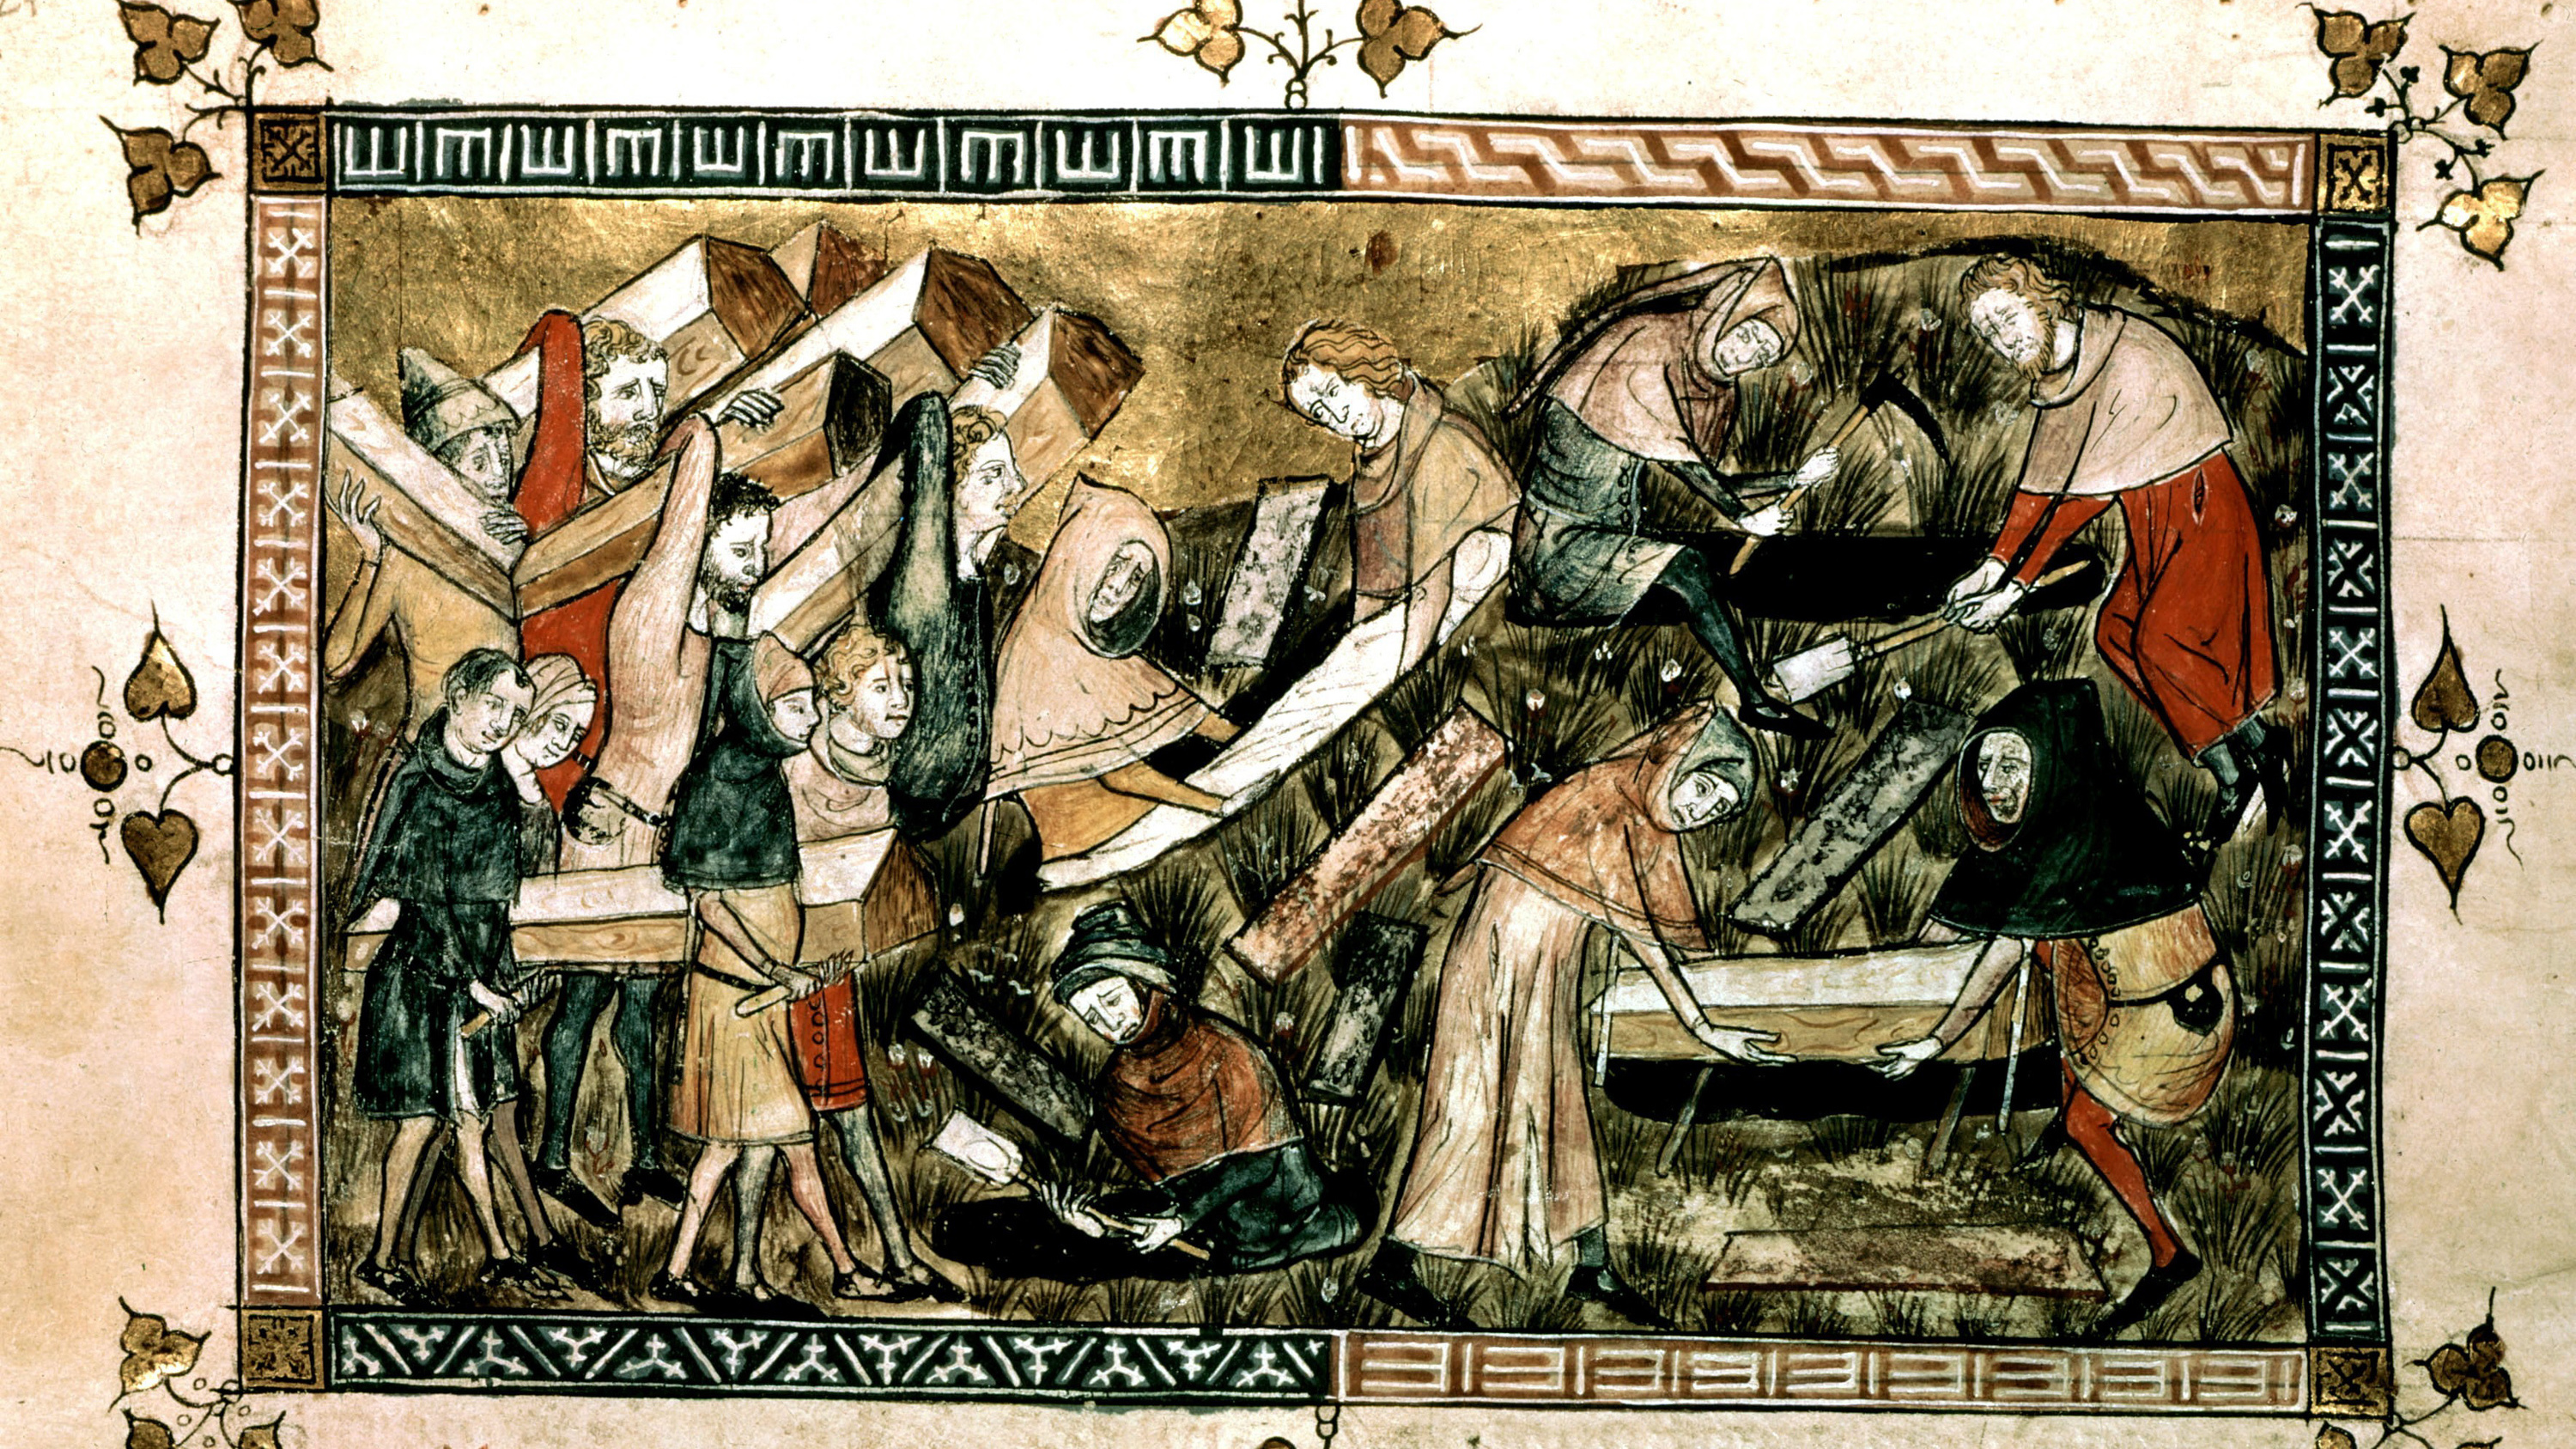 christinan musliim responses to black plague Christian and muslim views on the 14th century plague the black plague first was found in europe around the 1300 more about the plague - the black death essay.